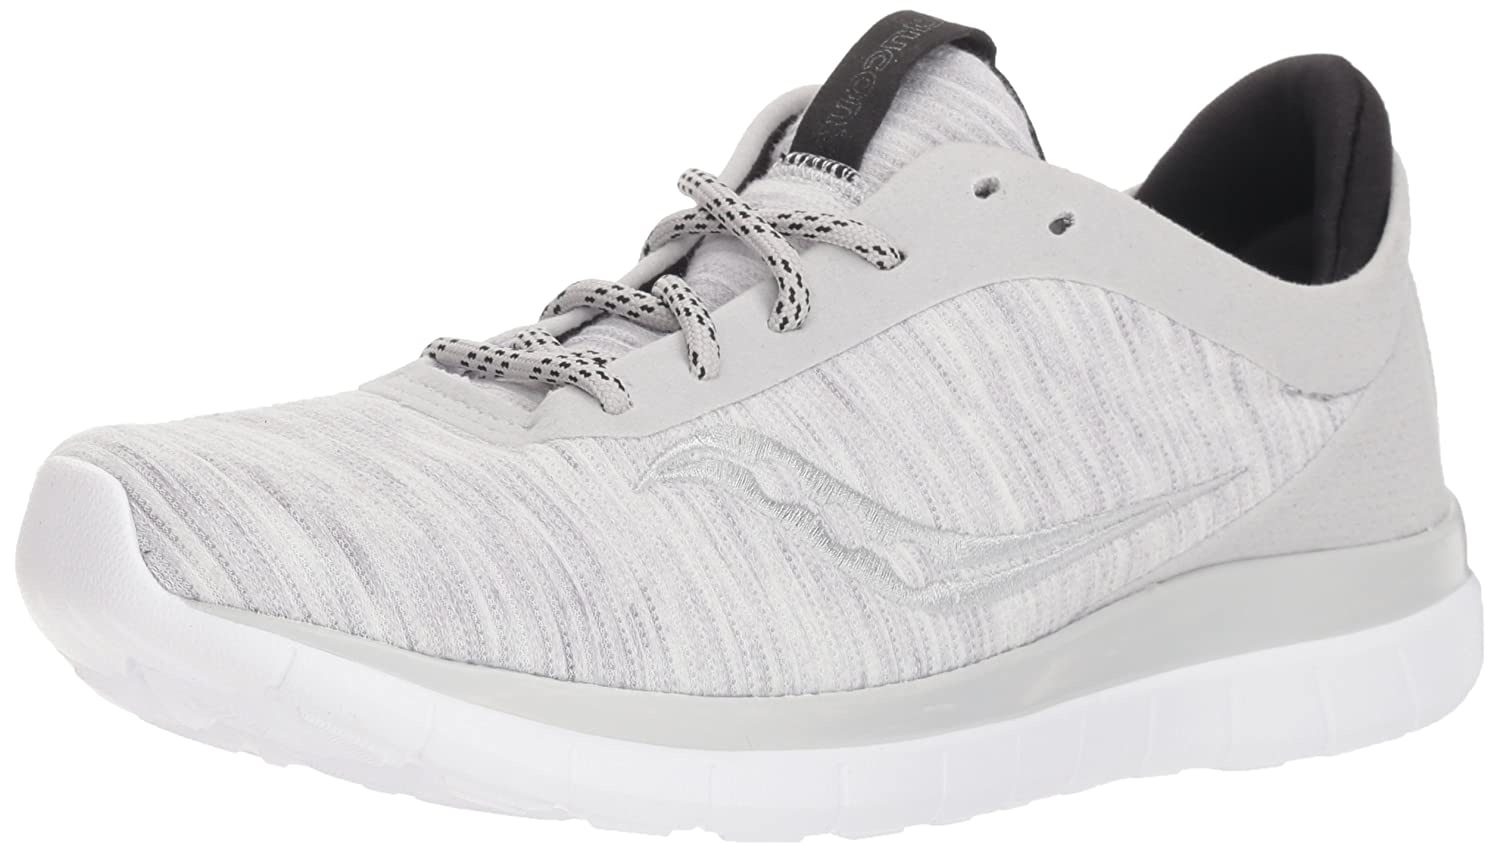 Saucony Women's Liteform Escape Sneaker B077XZQNVB 6 M US|Light Grey